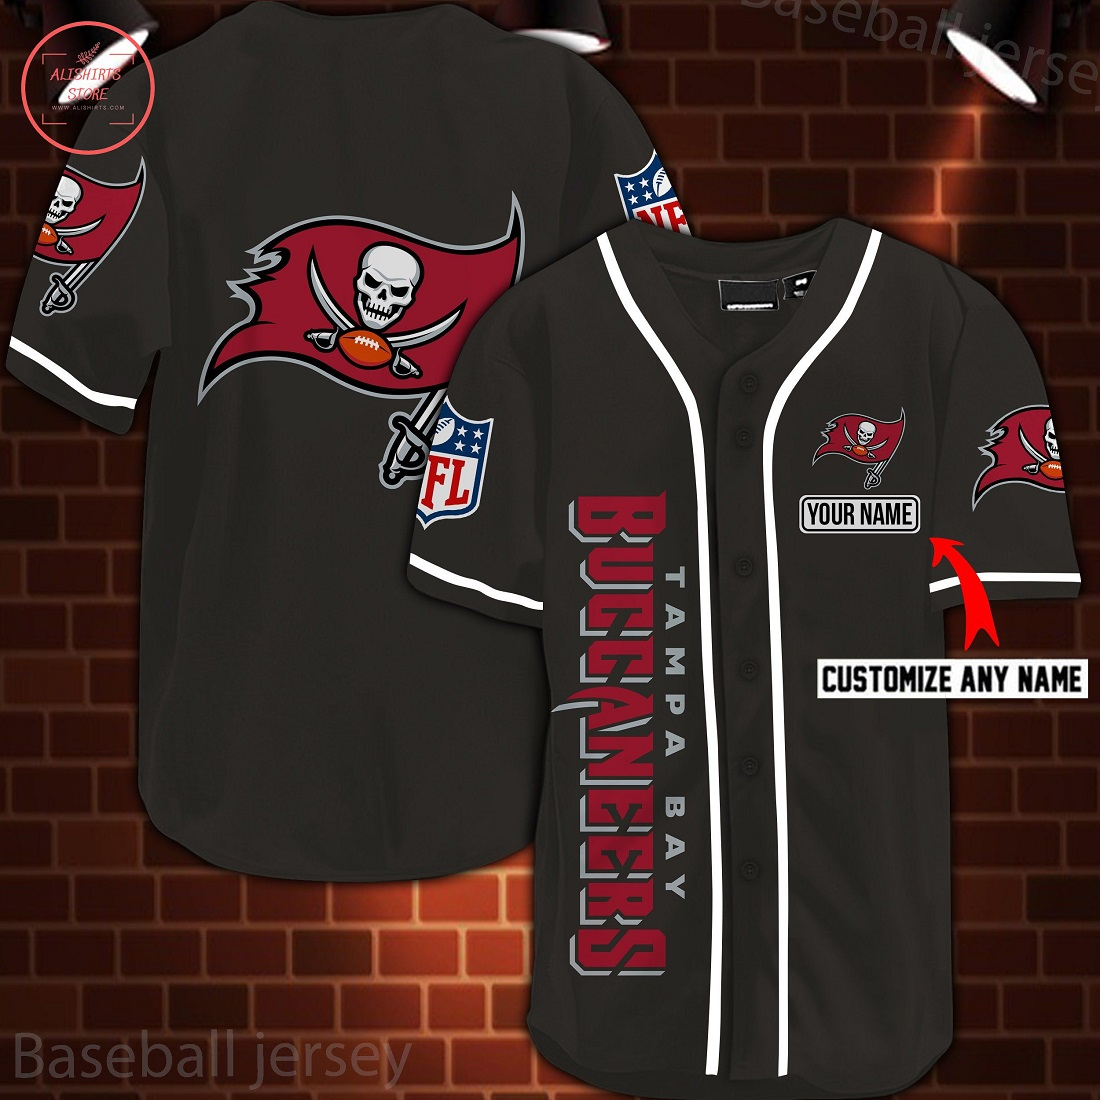 Nfl Tampa Bay Buccaneers Personalized Baseball Jersey